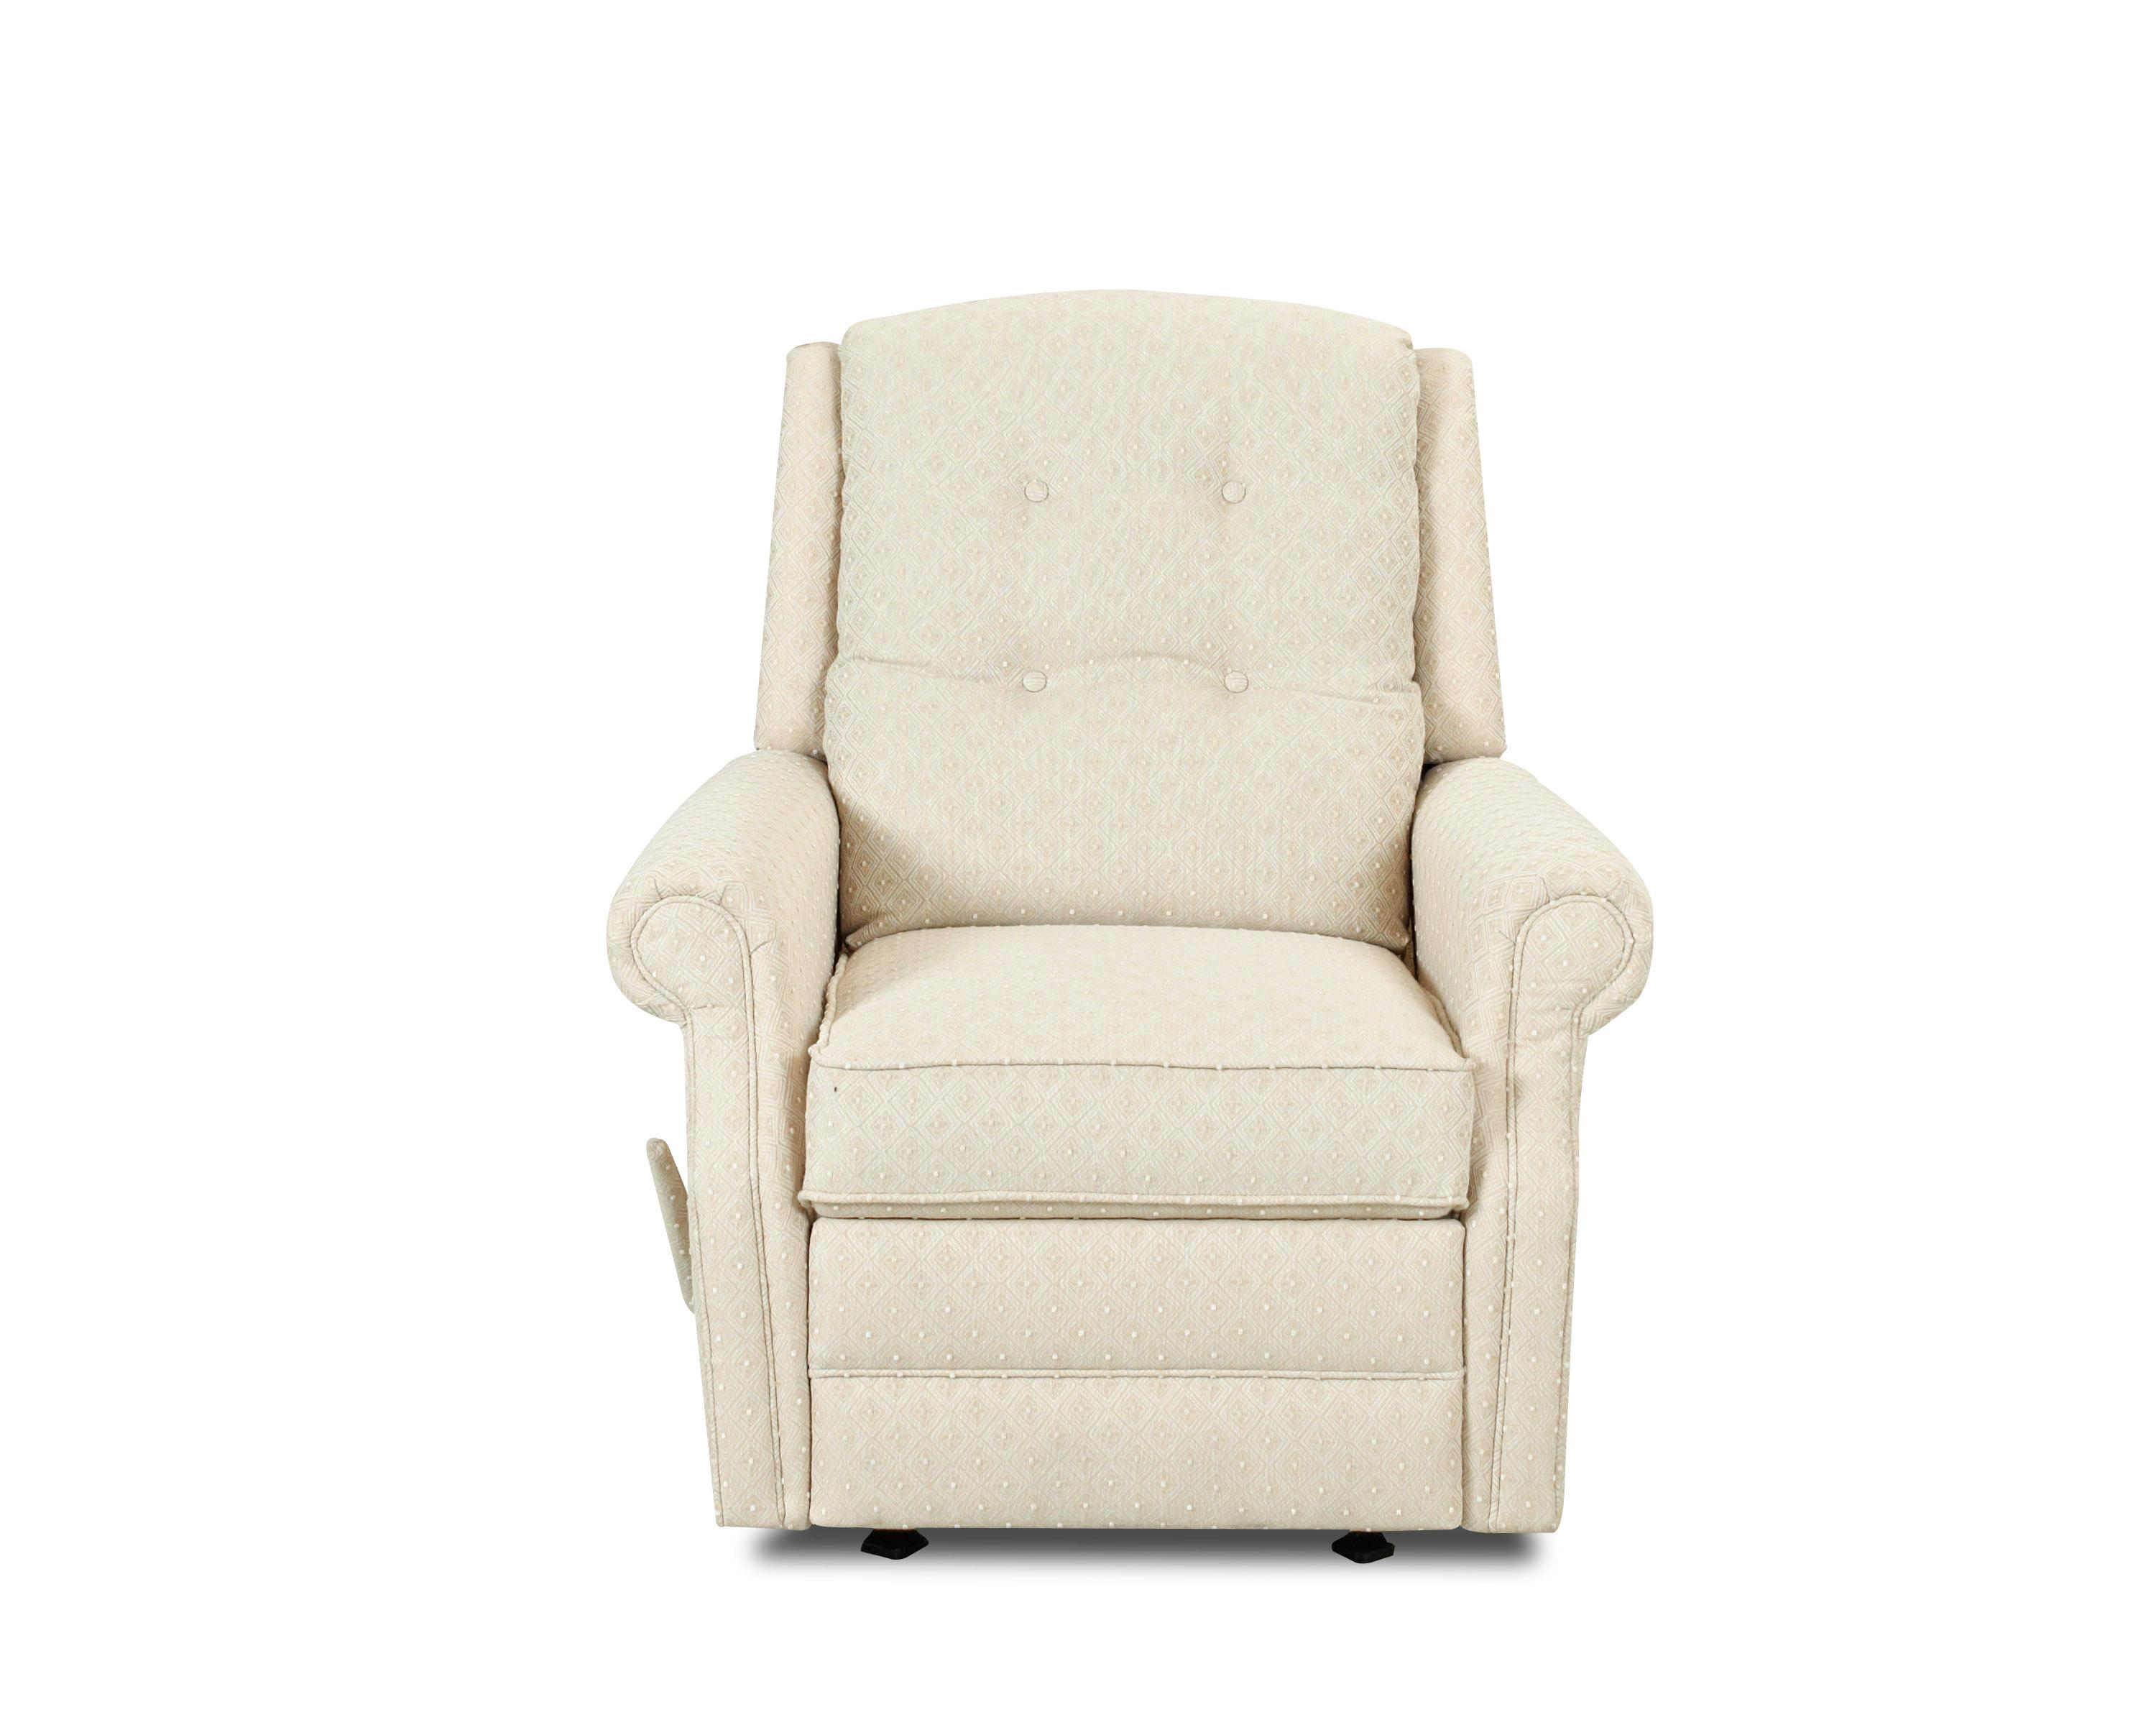 transitional swivel gliding reclining chair with button tufting by